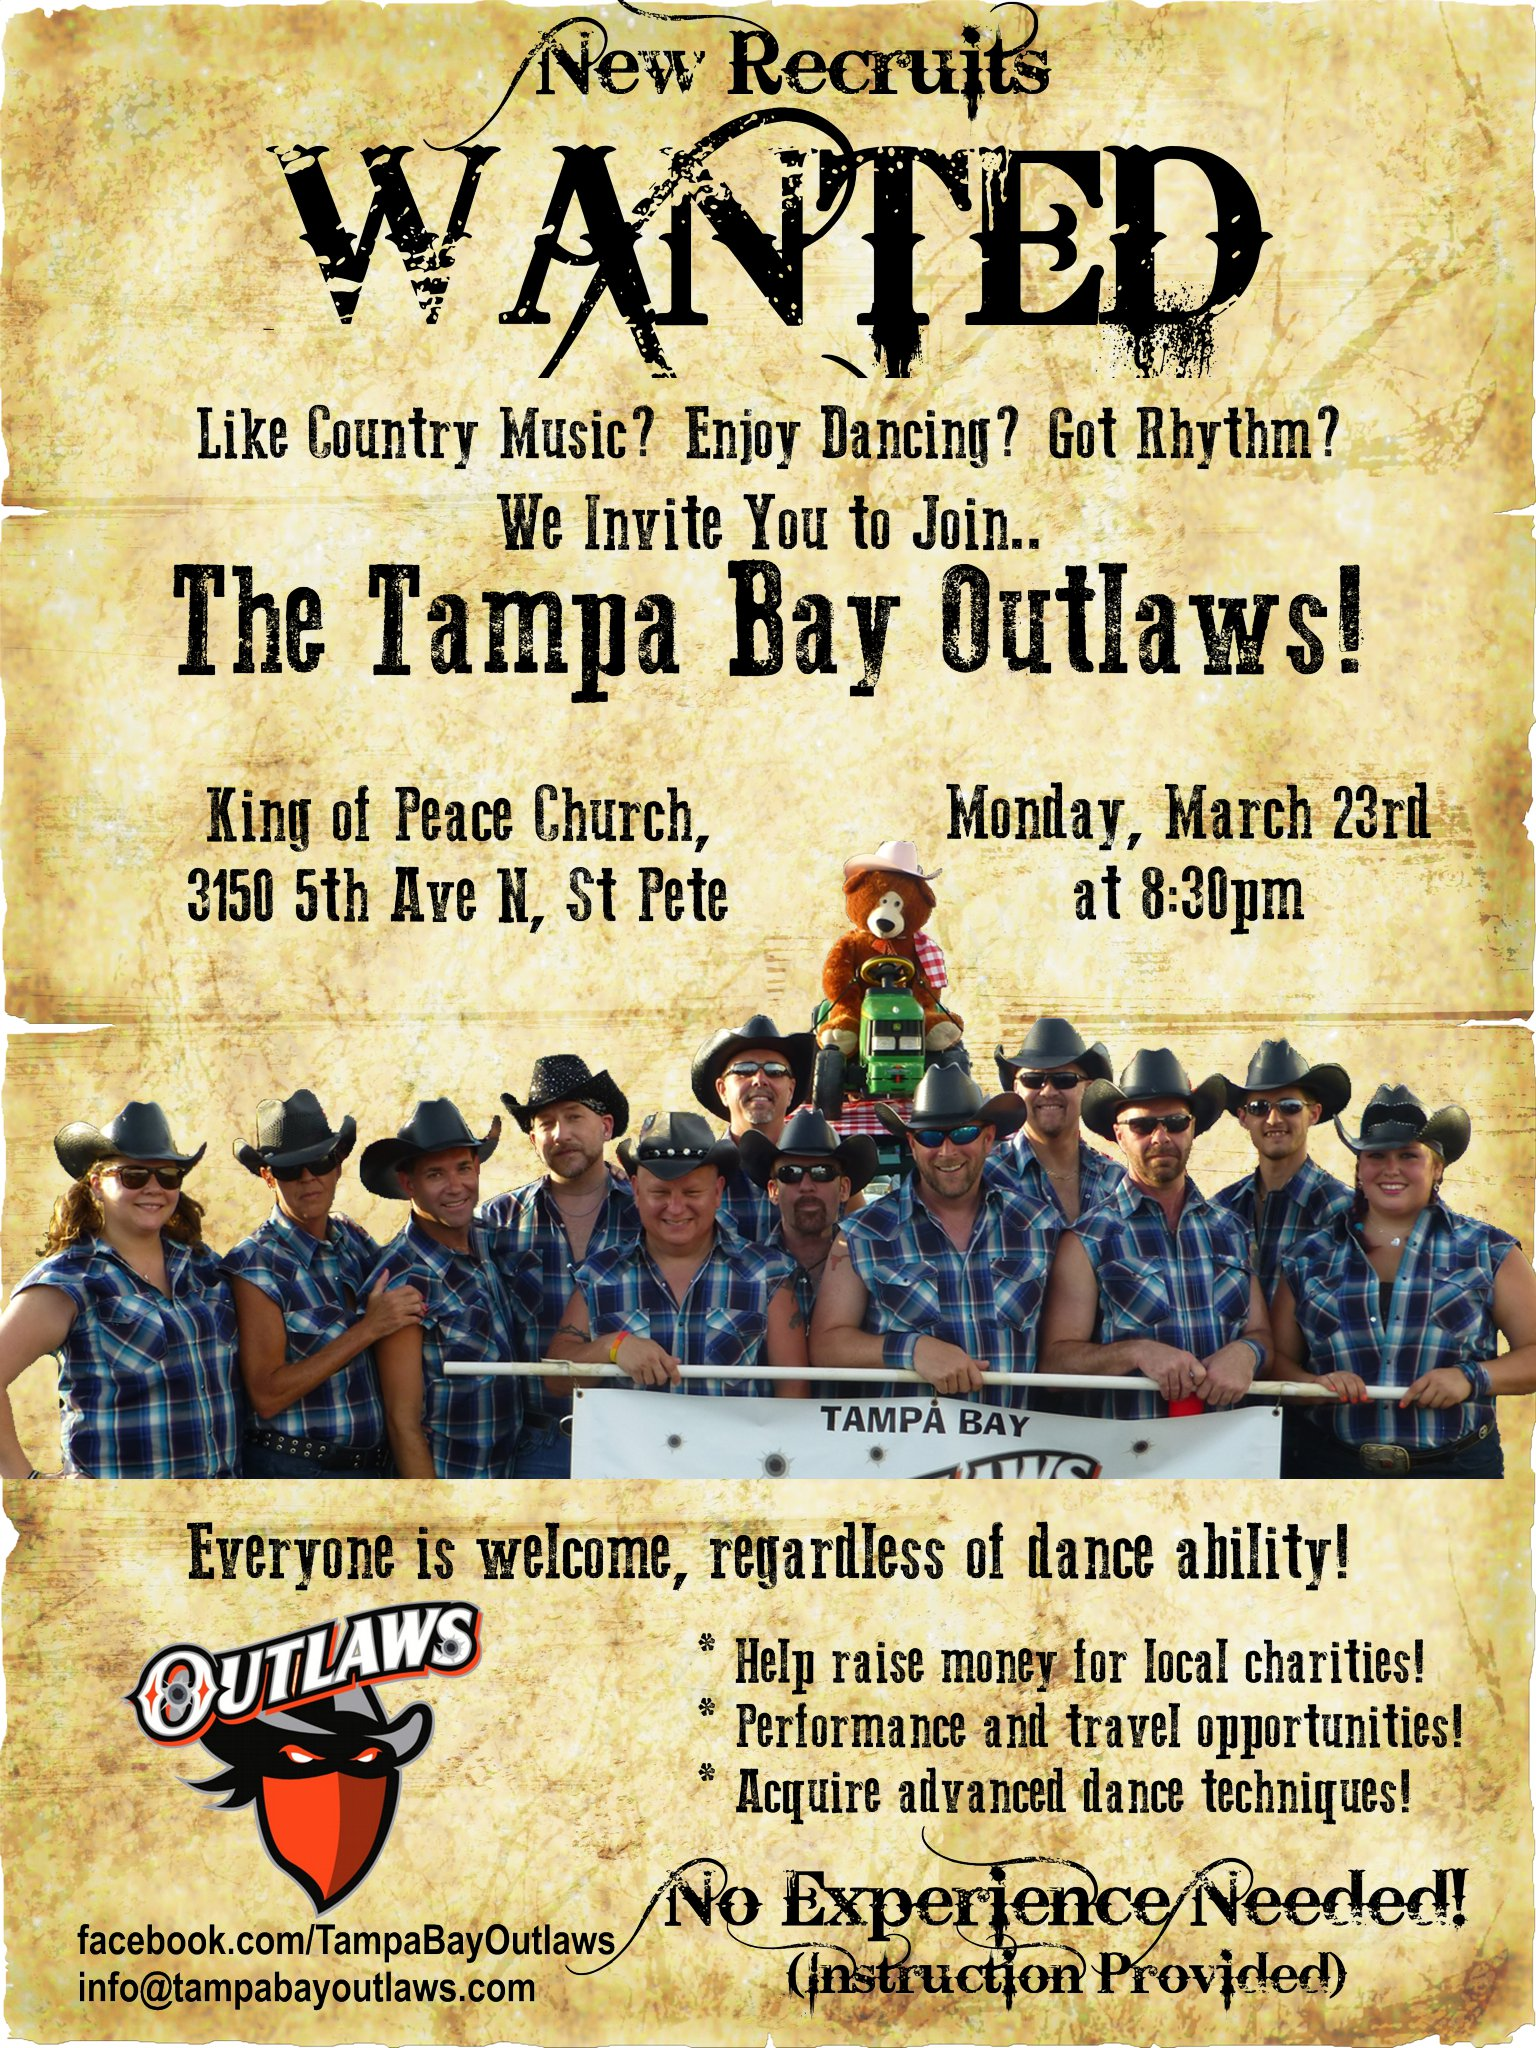 The Tampa Bay Outlaws, a Gay Country Western Dance Team, are recruiting. Photo Copyright 2015, Tampa Bay Outlaws.